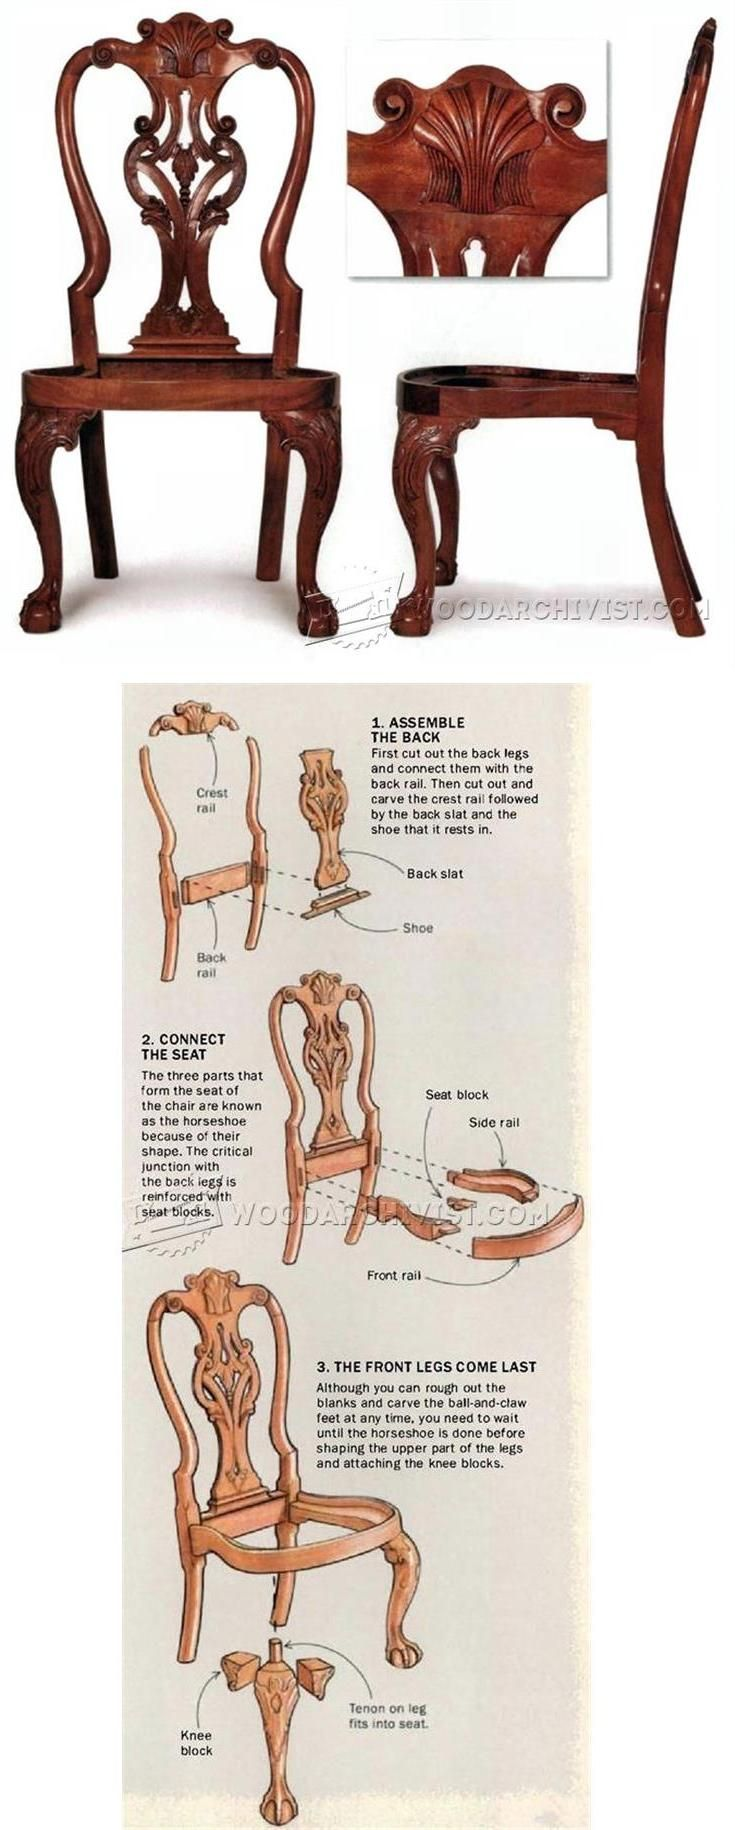 How to build a wingback chair my woodworking plans - Queen Anne Side Chair Plans Furniture Plans And Projects Woodarchivist Com